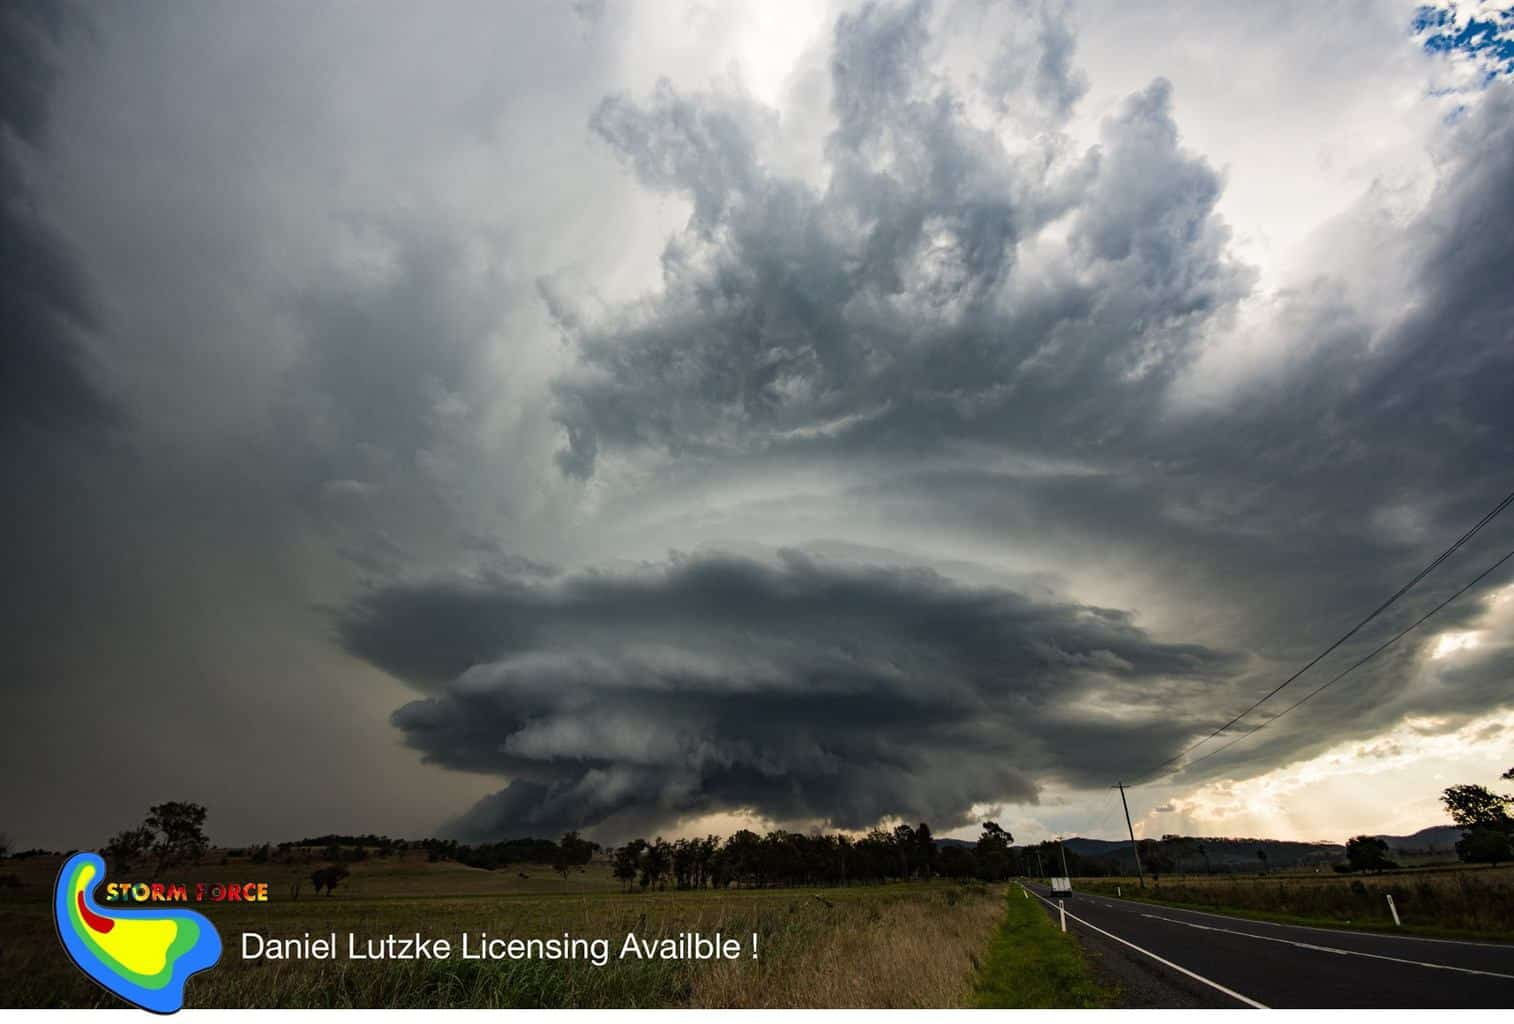 hi all this would have to be my favourite storm,  this supercell was on a very marginal day in OCT  2017 this classic supercell storm, it tried to from over Rathdowney and was very hp mess. I tracked the storm for 30 km north, when this epic structure came out of the rain and was going hard north just west of town with strong winds and golf ball hail an hour after this photo and like that was all over and had fully disappeared ,, there wasn't to many structured storms like that this season but I hope there will be next season .